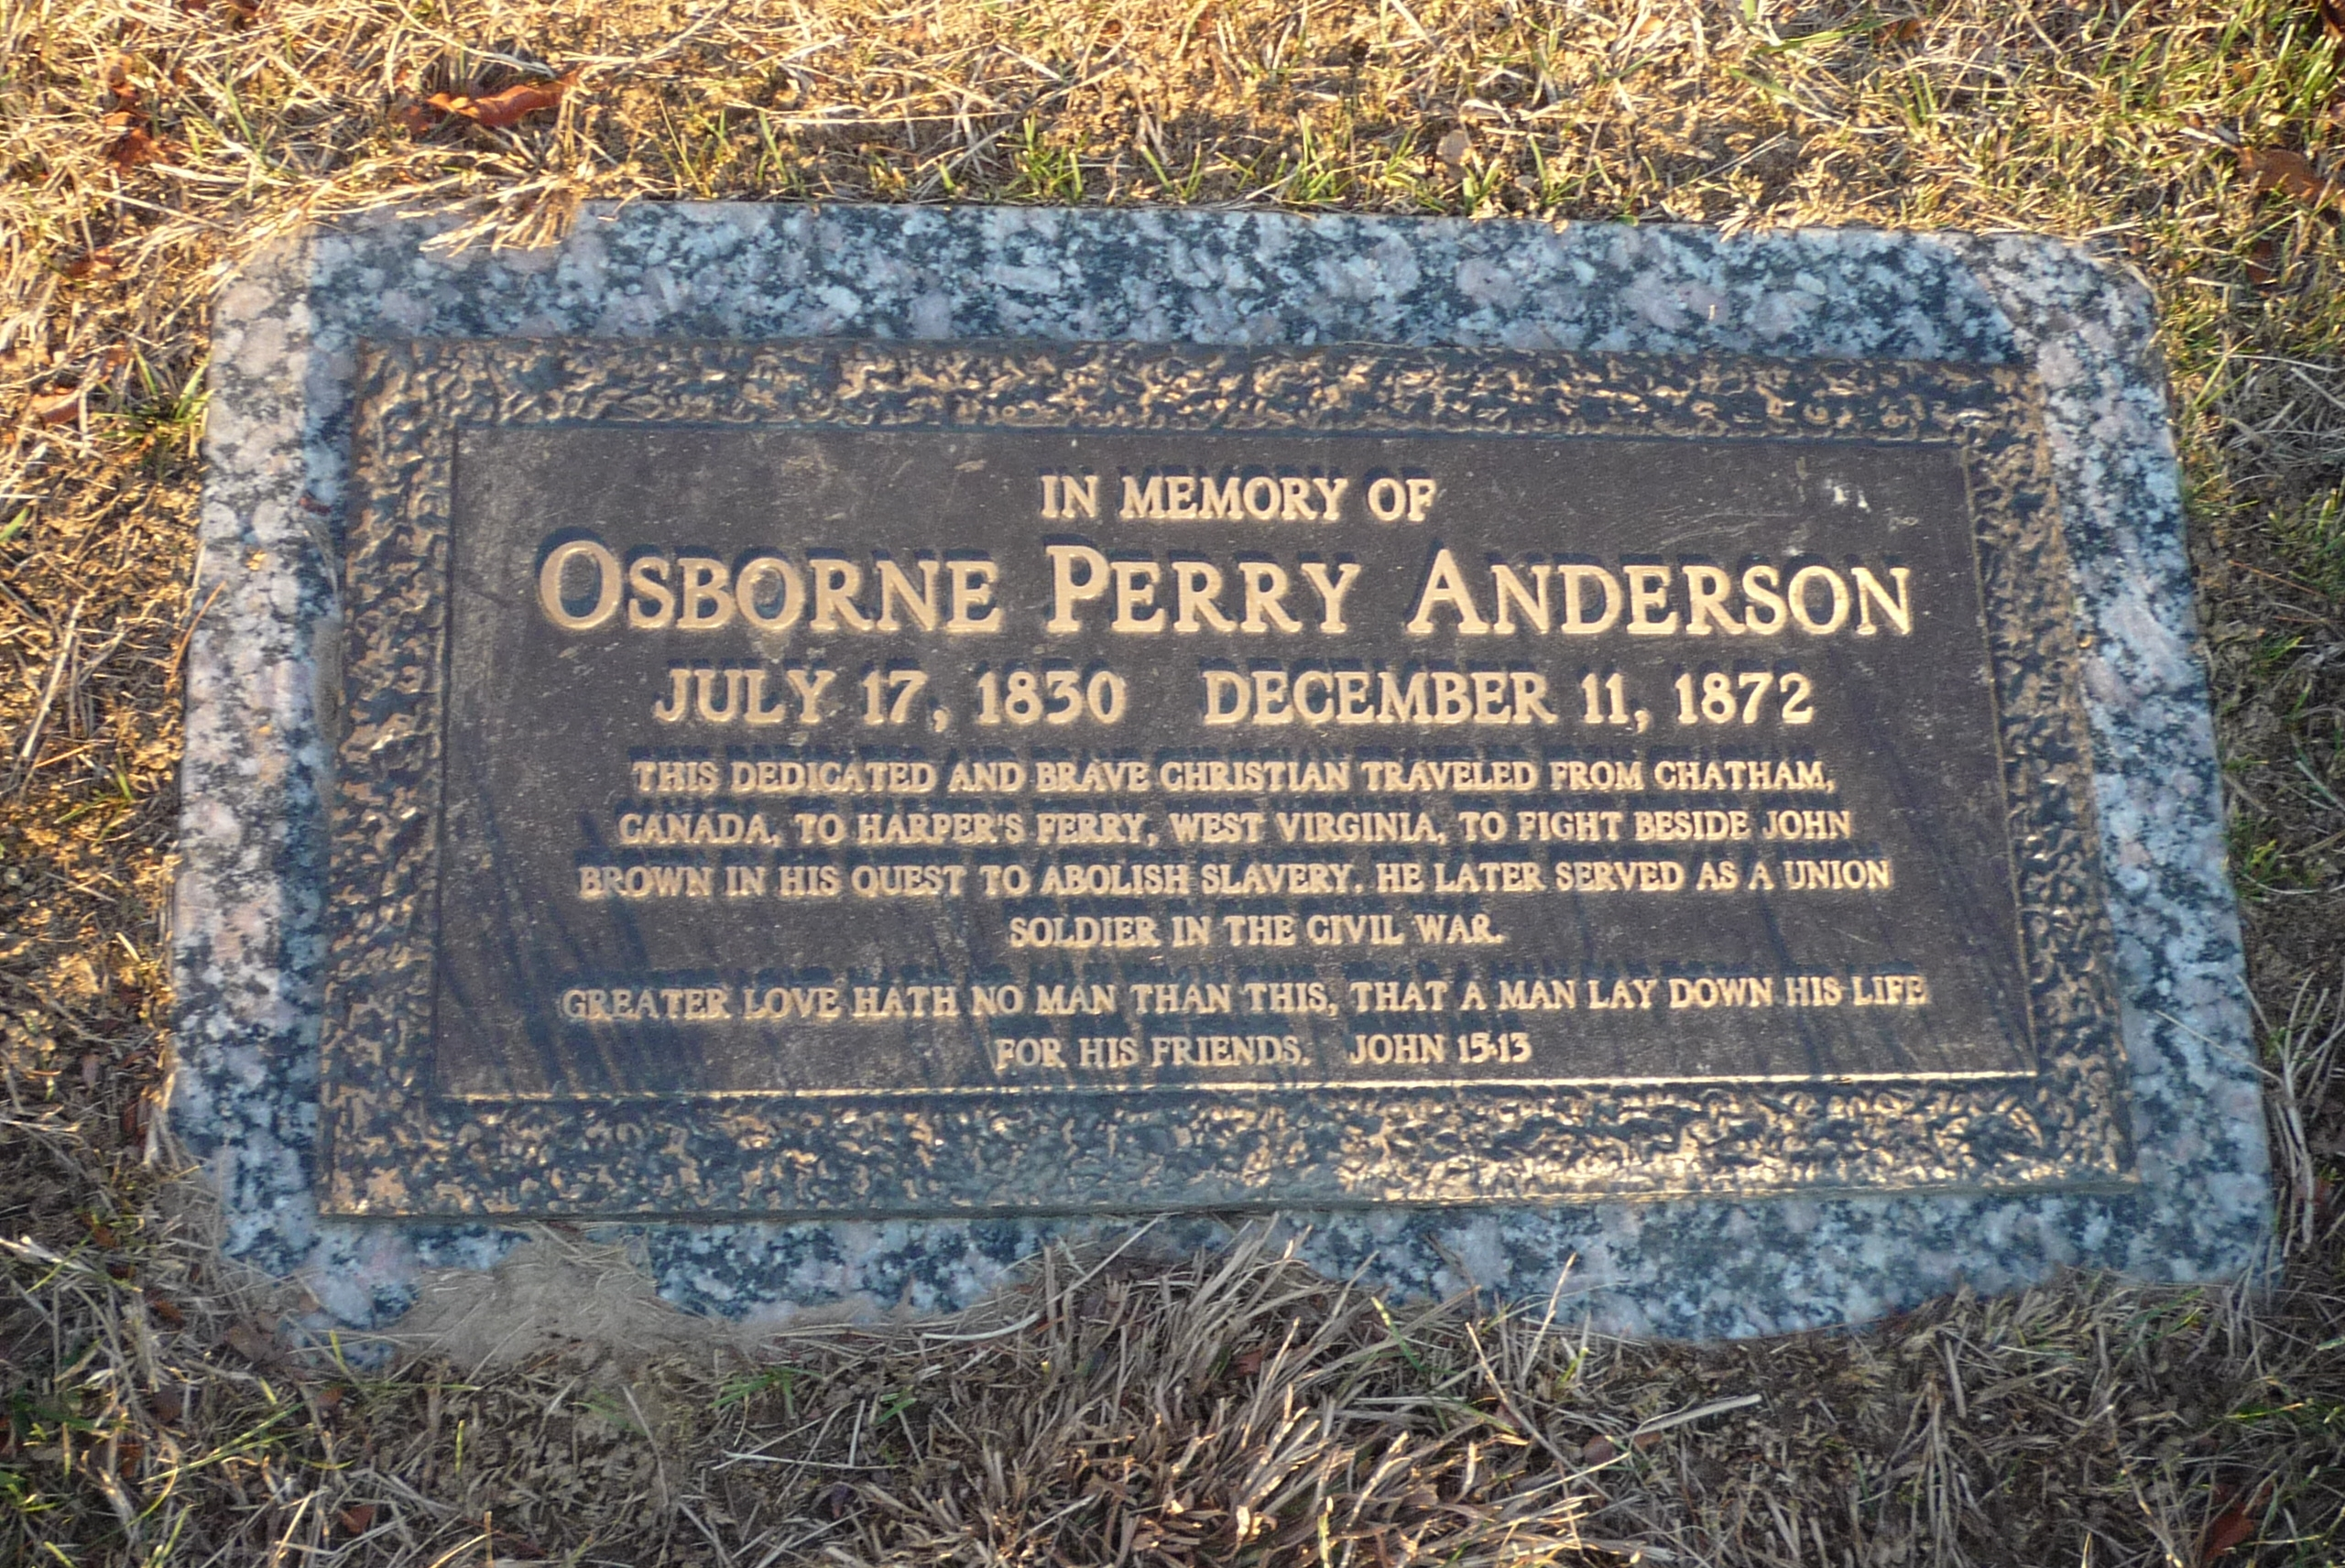 Oxborne Perry Anderson grave marker